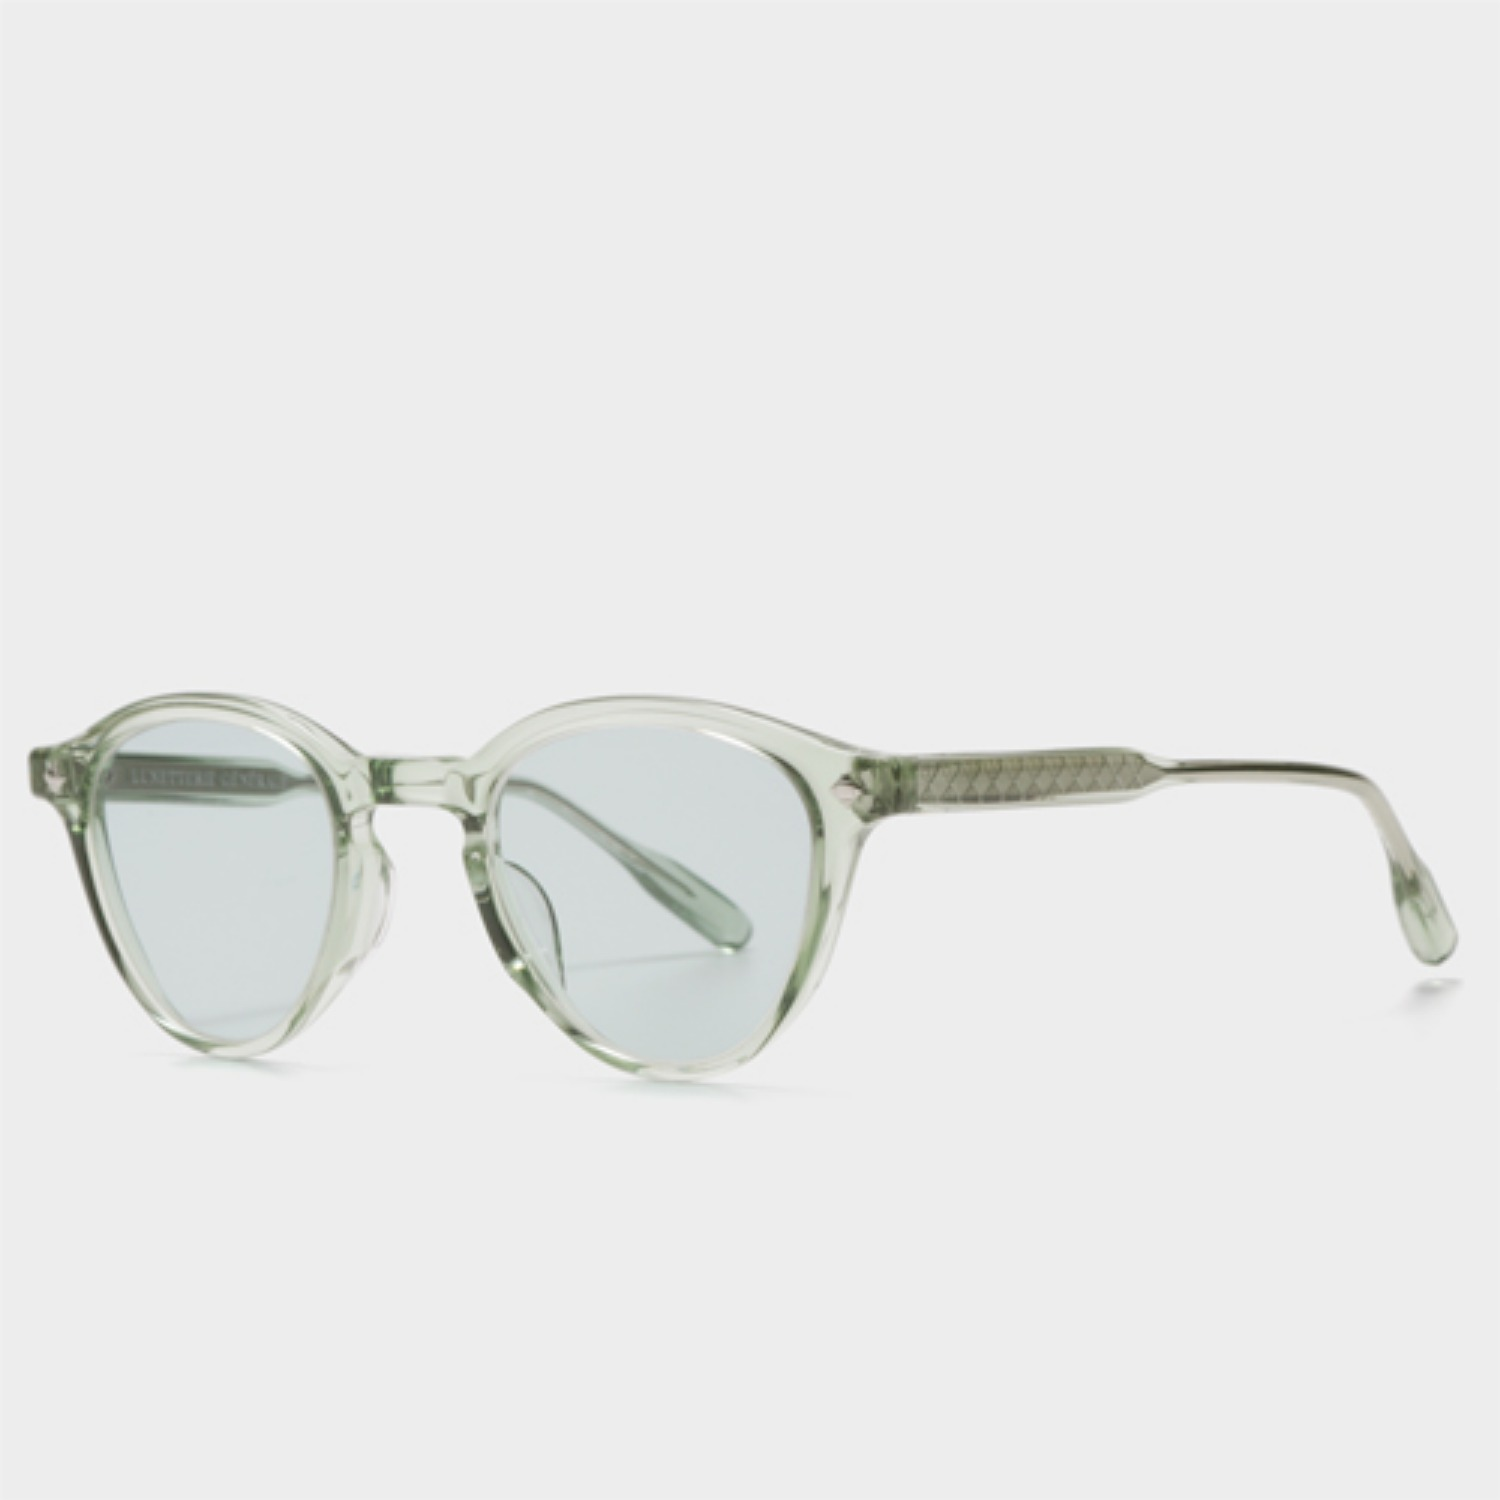 루네뜨리제너럴 DOLCE VITA IV Emerald Crystal (Light Emerald Tint Lens)